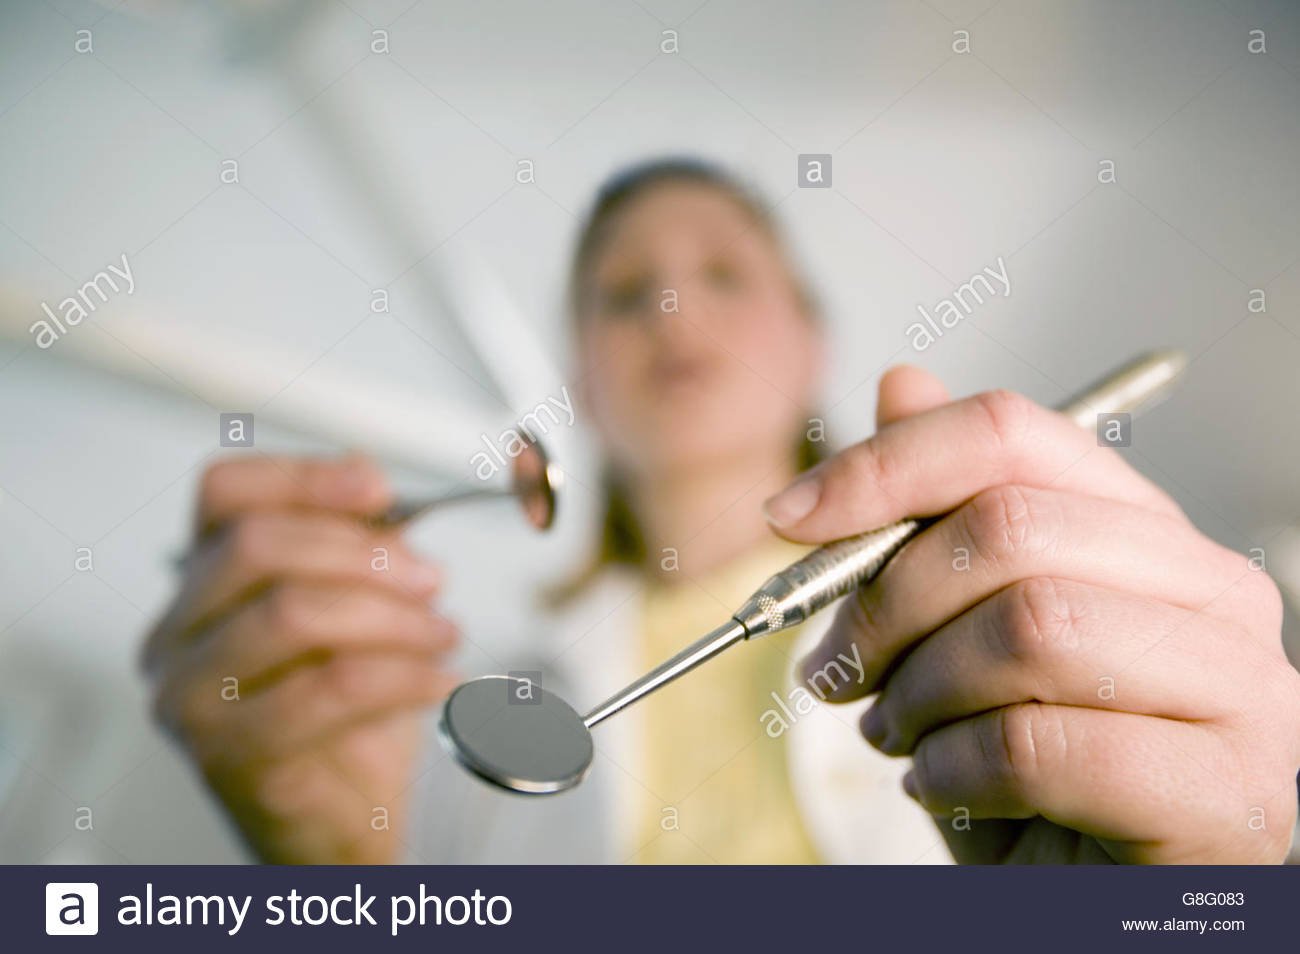 Female dental assistant holding dental mirrors - Stock Image